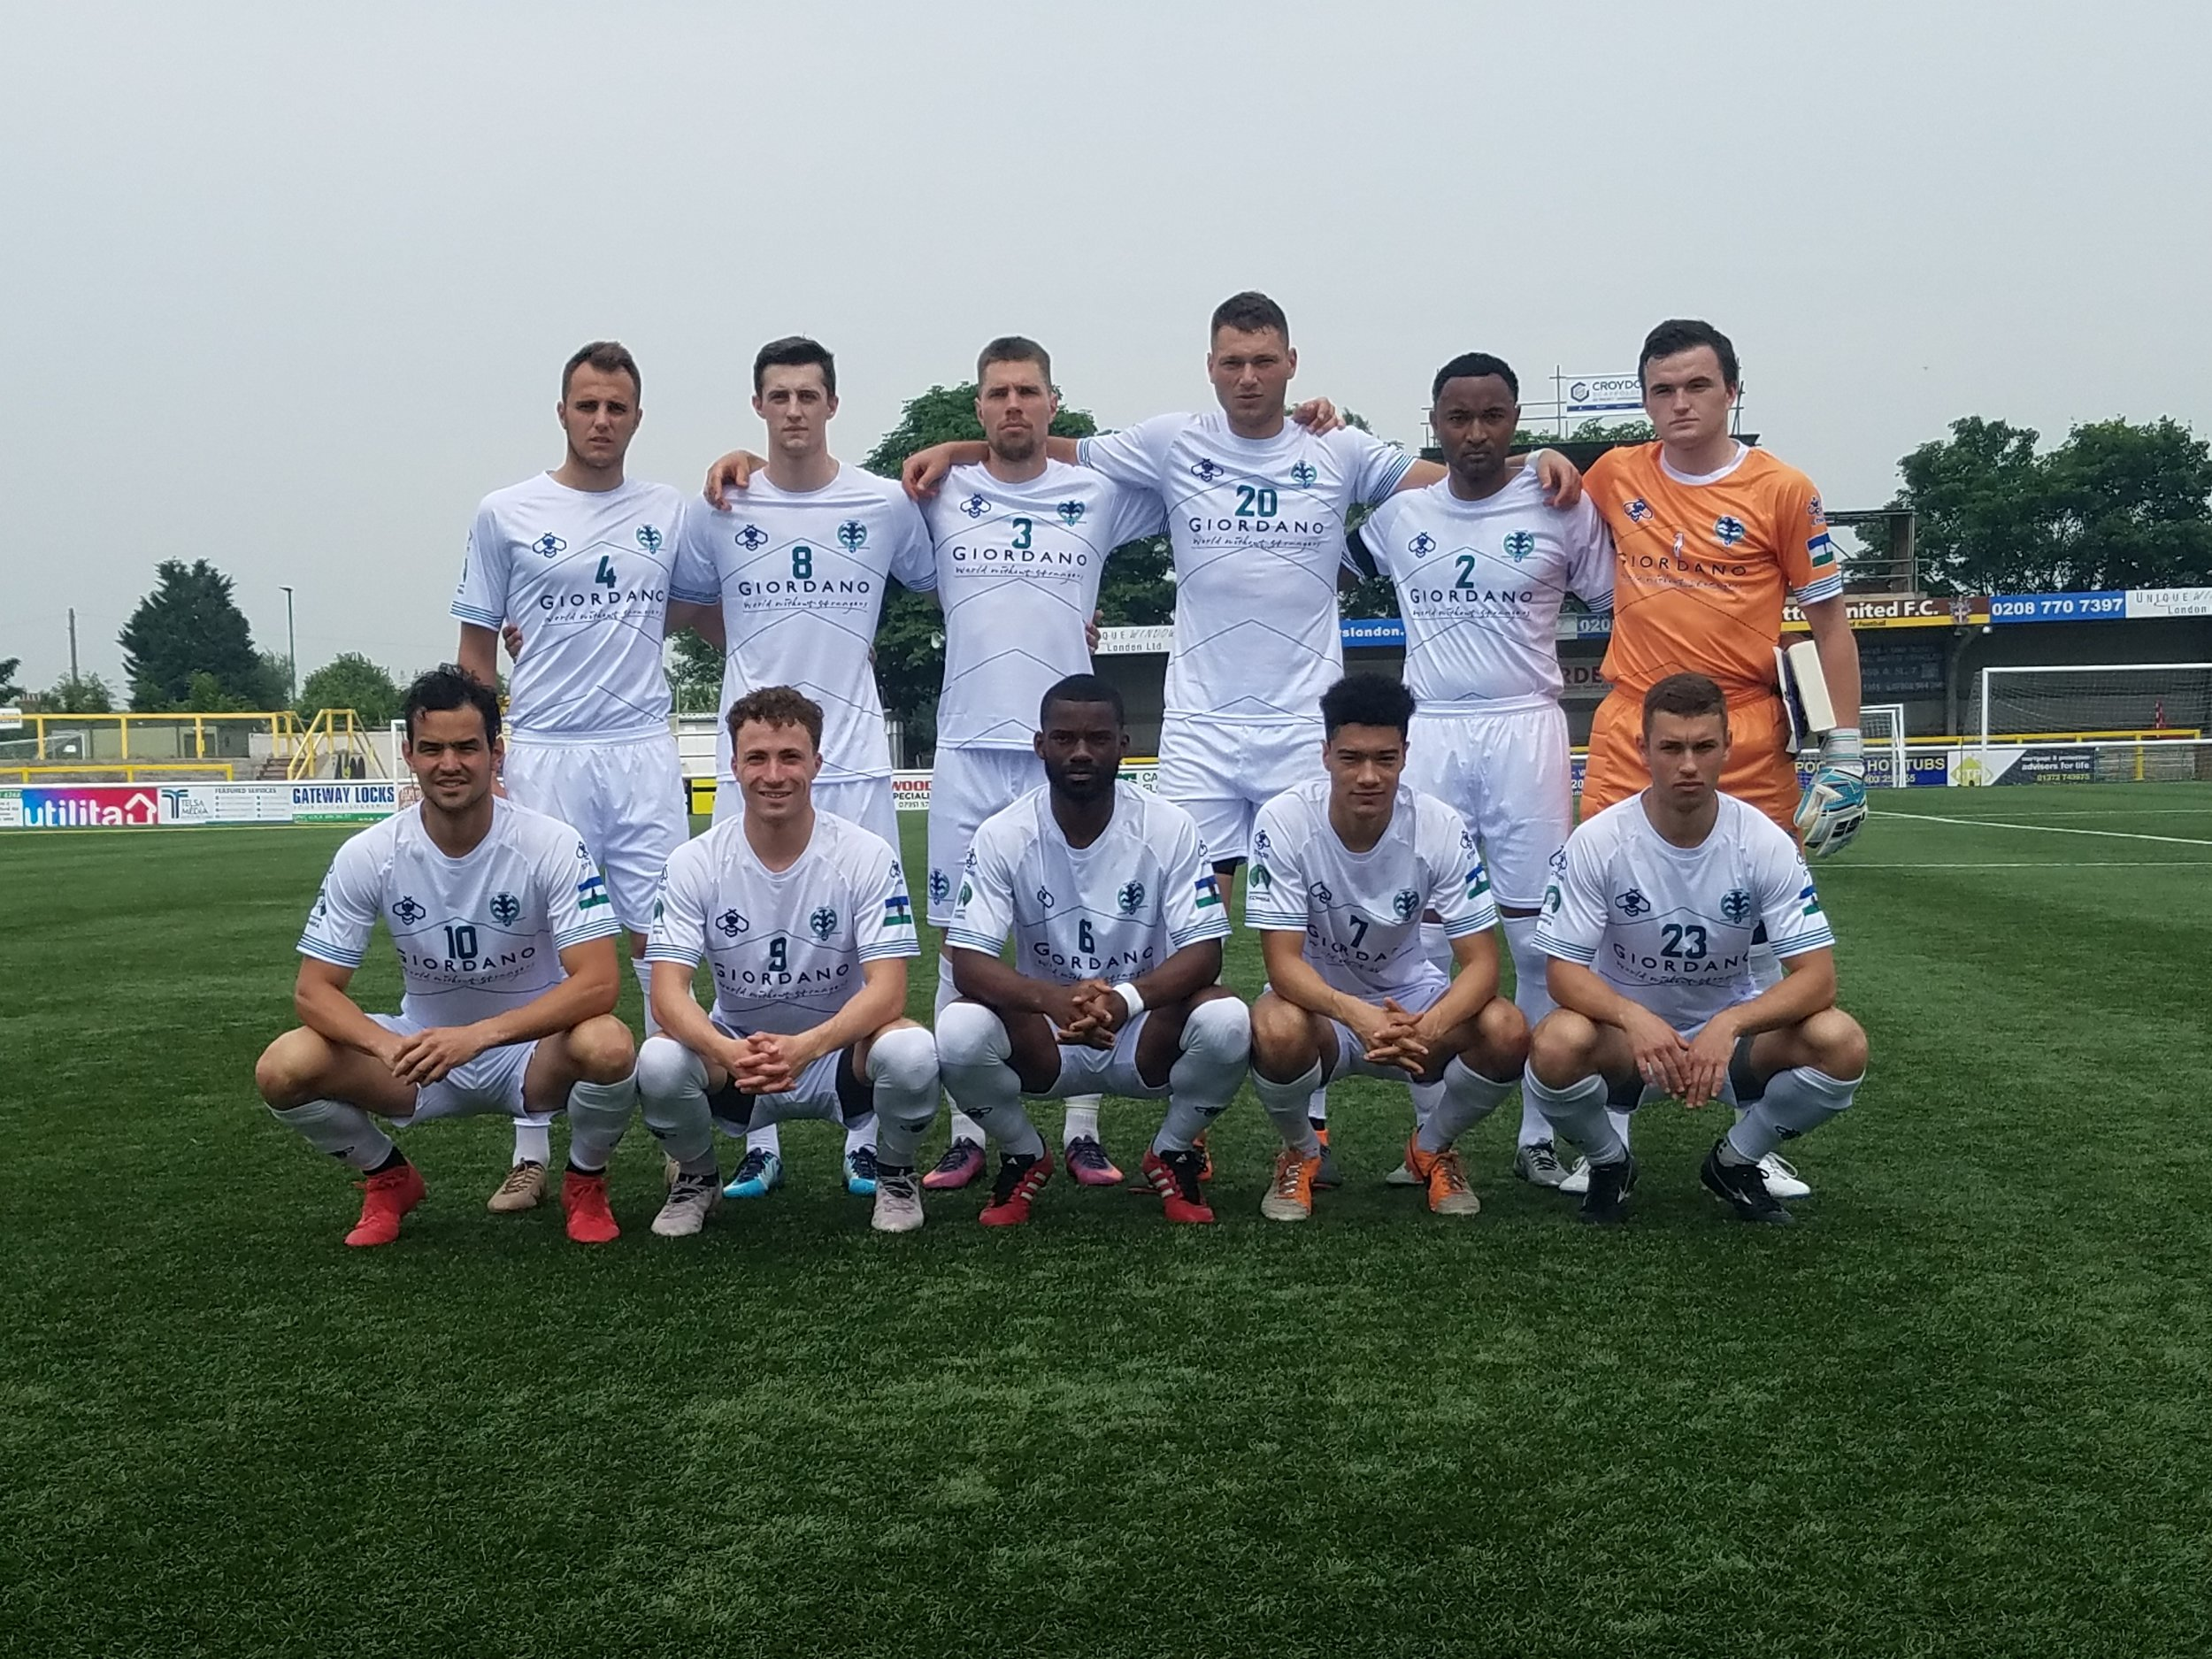 The first Cascadia starting squad. Photo credit: Jay Conrad, Cascadia Underground